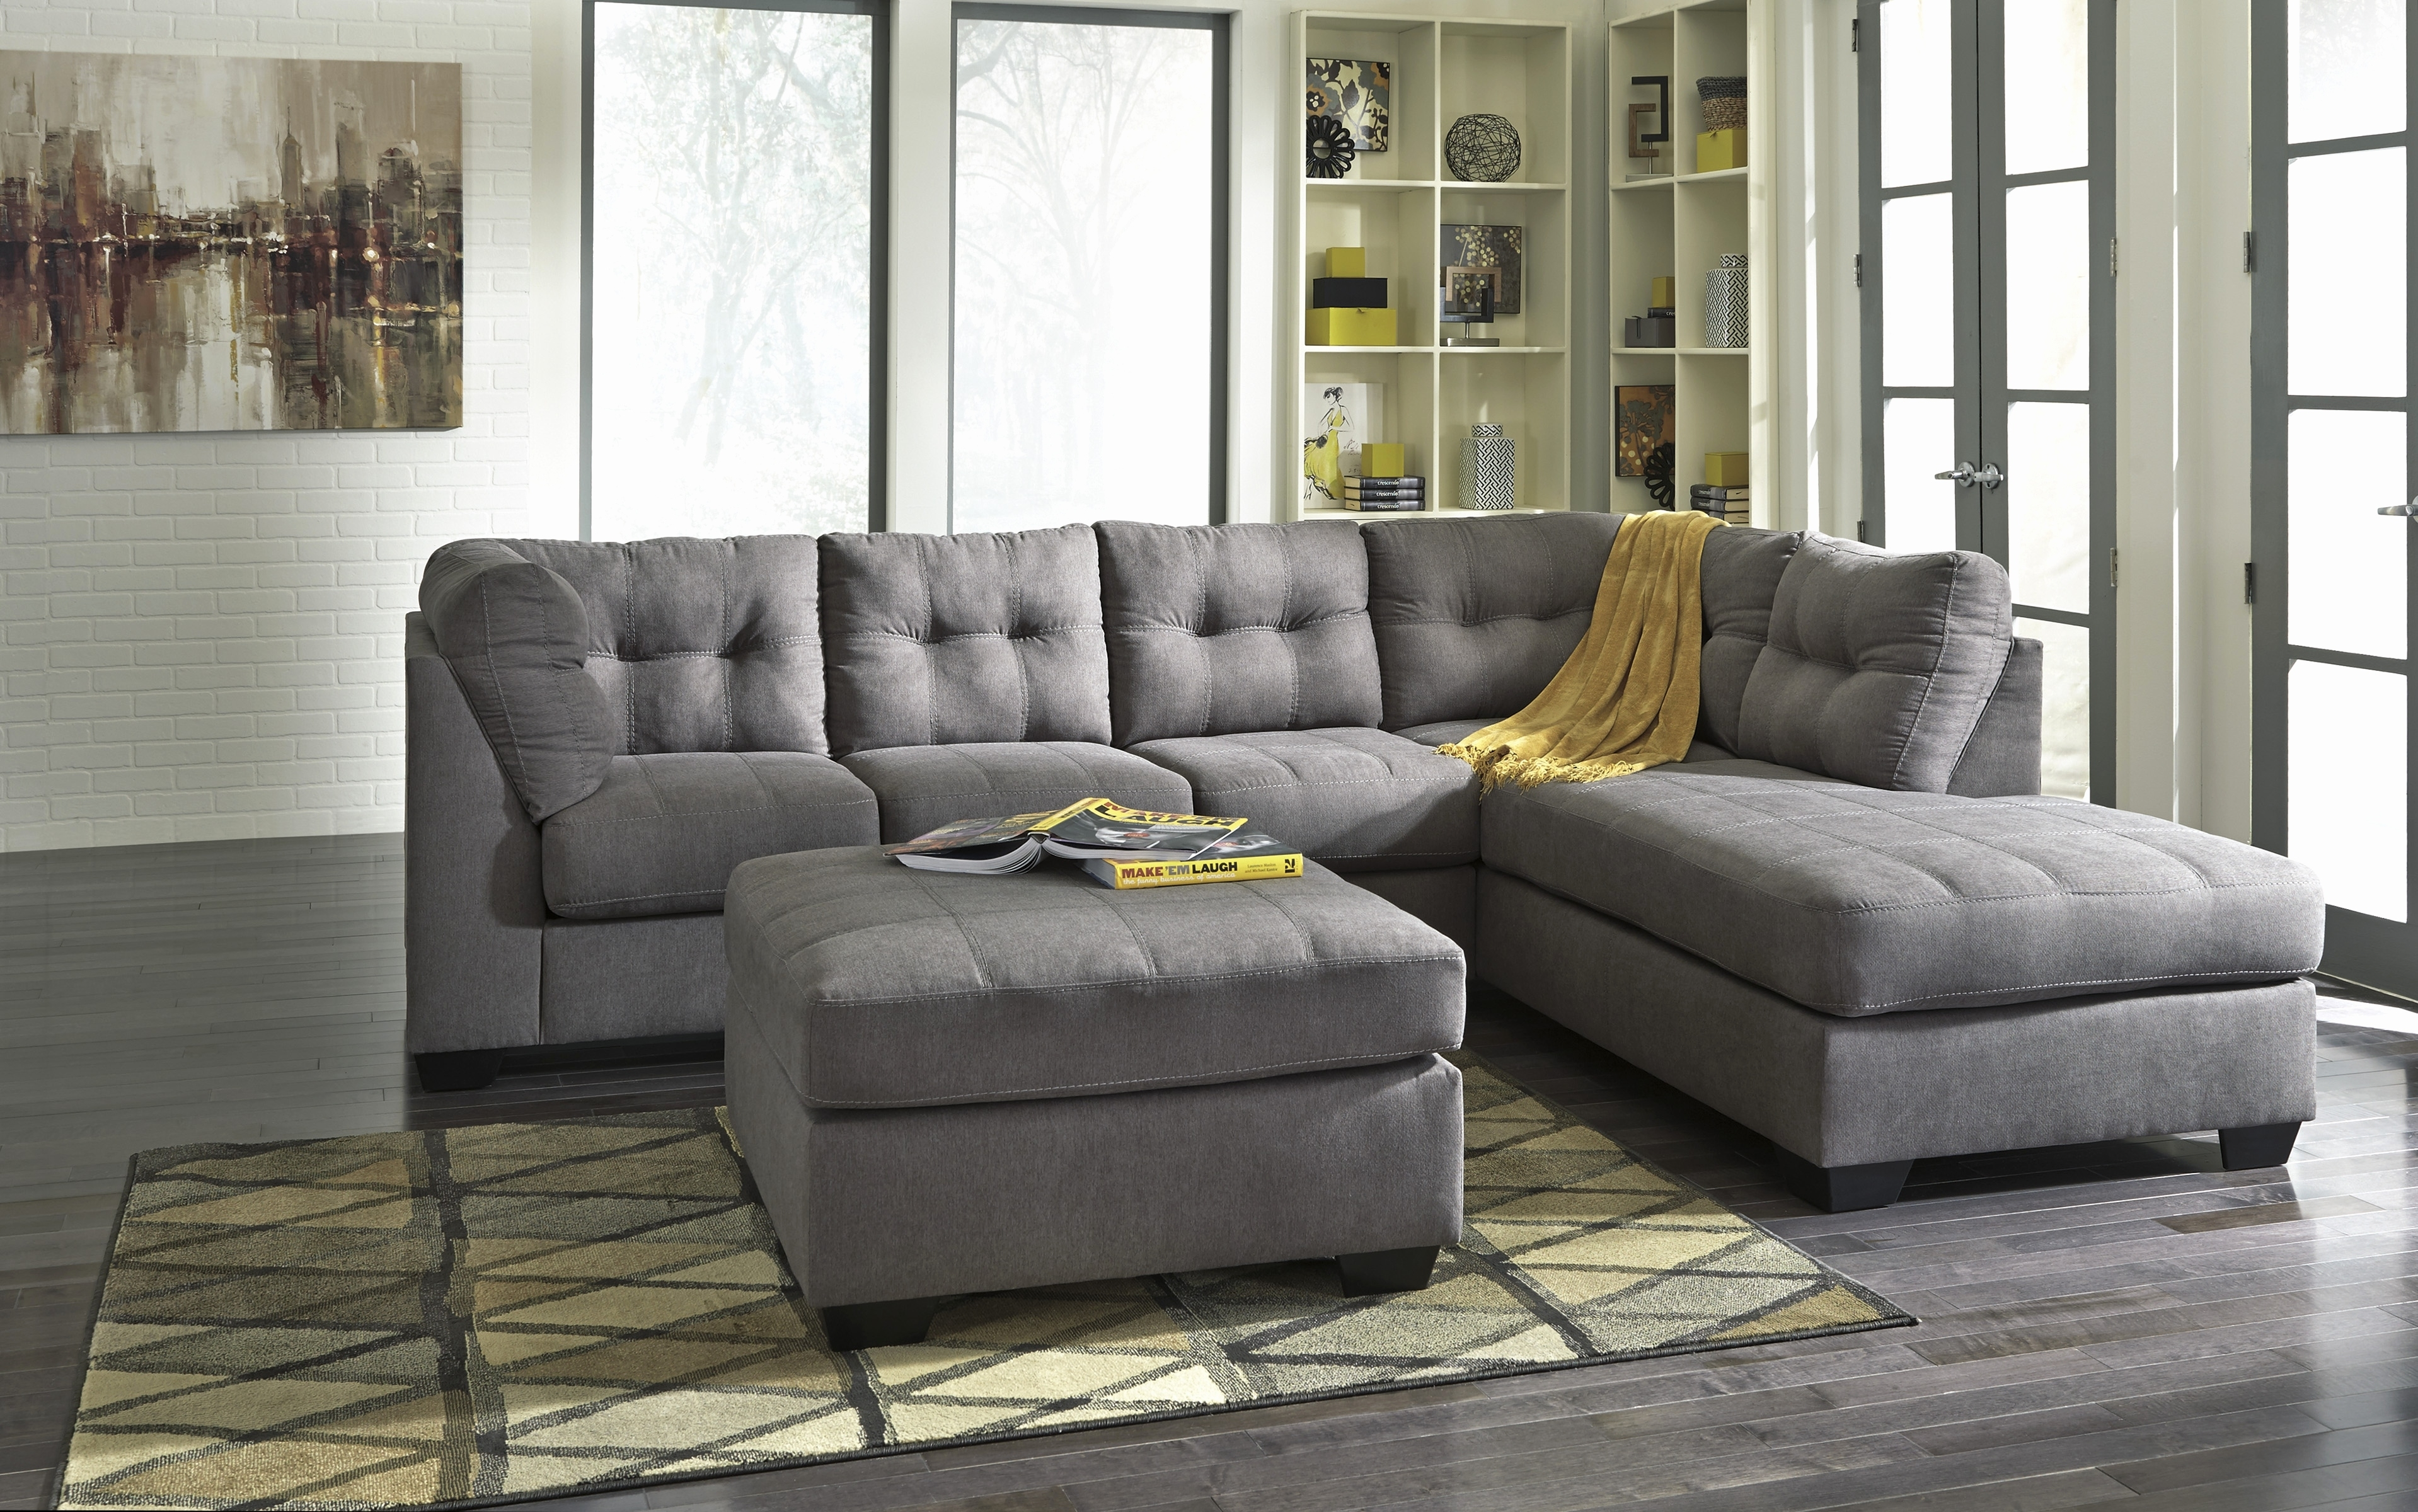 Grey Sectional Sofa Ashley Furniture 1025Theparty Com With Sofas Within Sectional Sofas At Ashley Furniture (View 11 of 15)